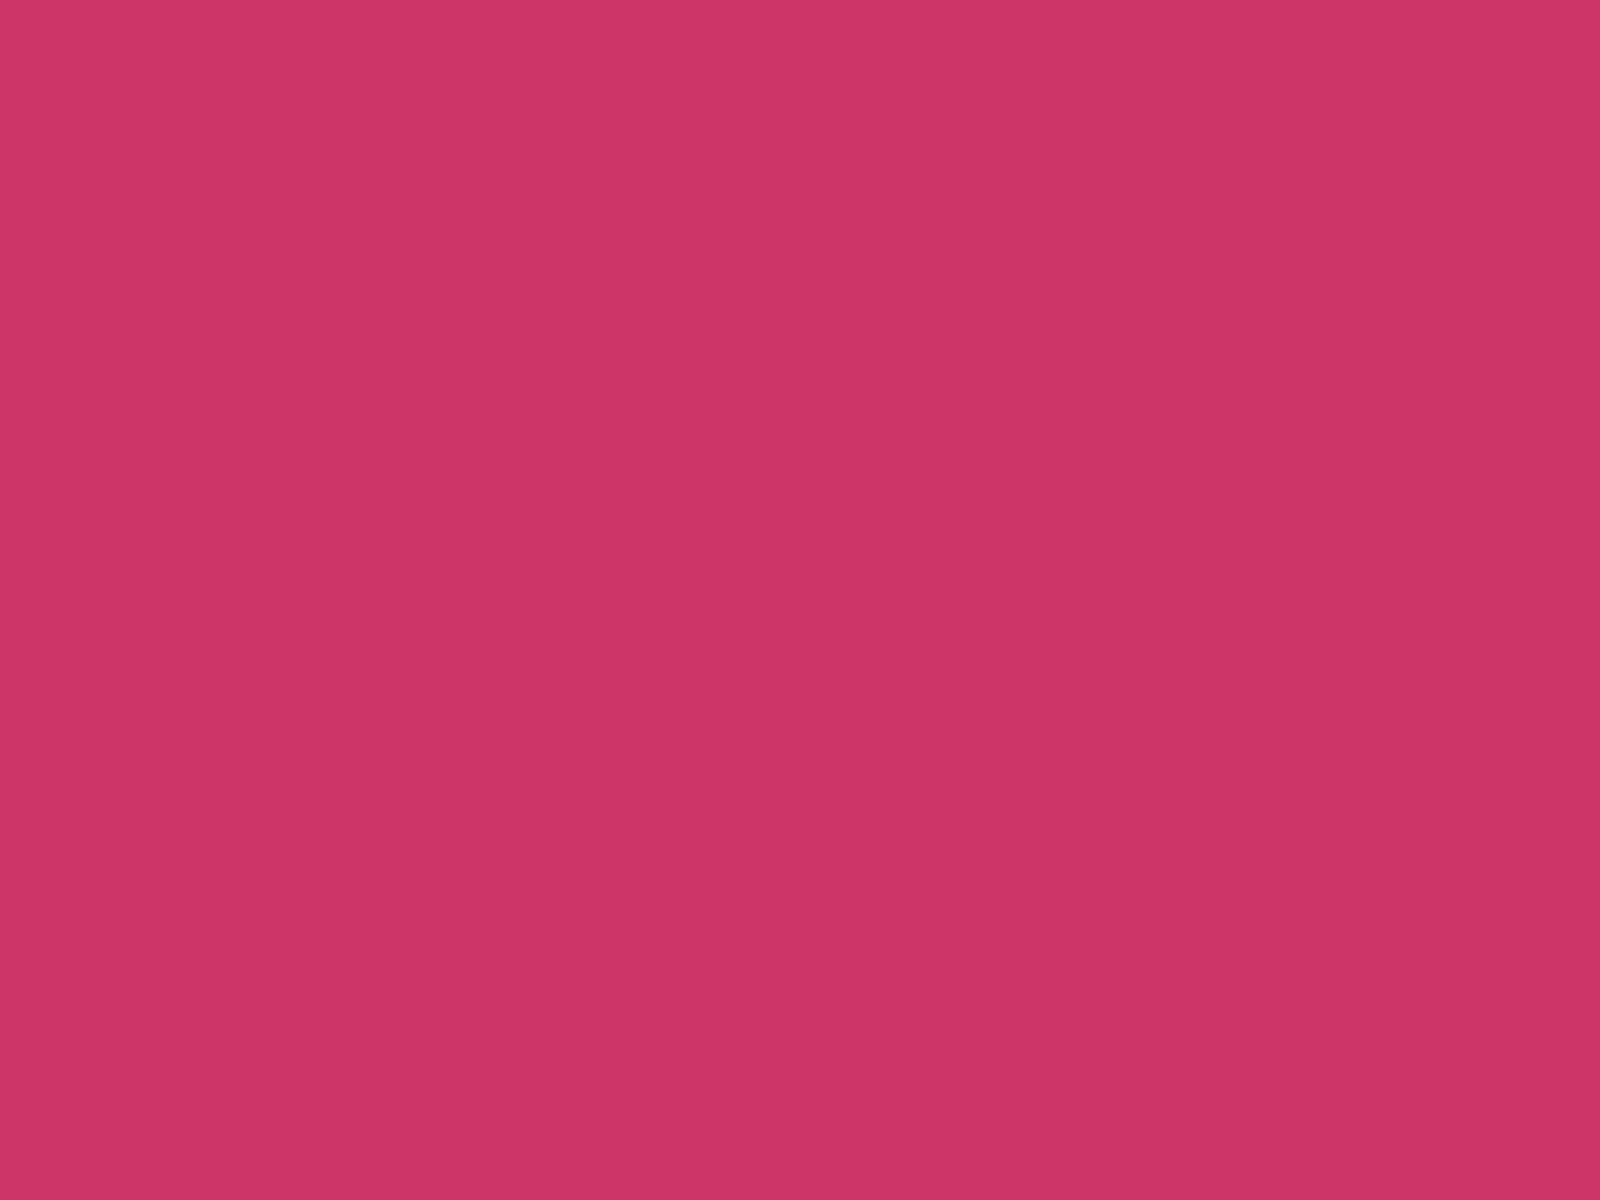 1600x1200 Steel Pink Solid Color Background